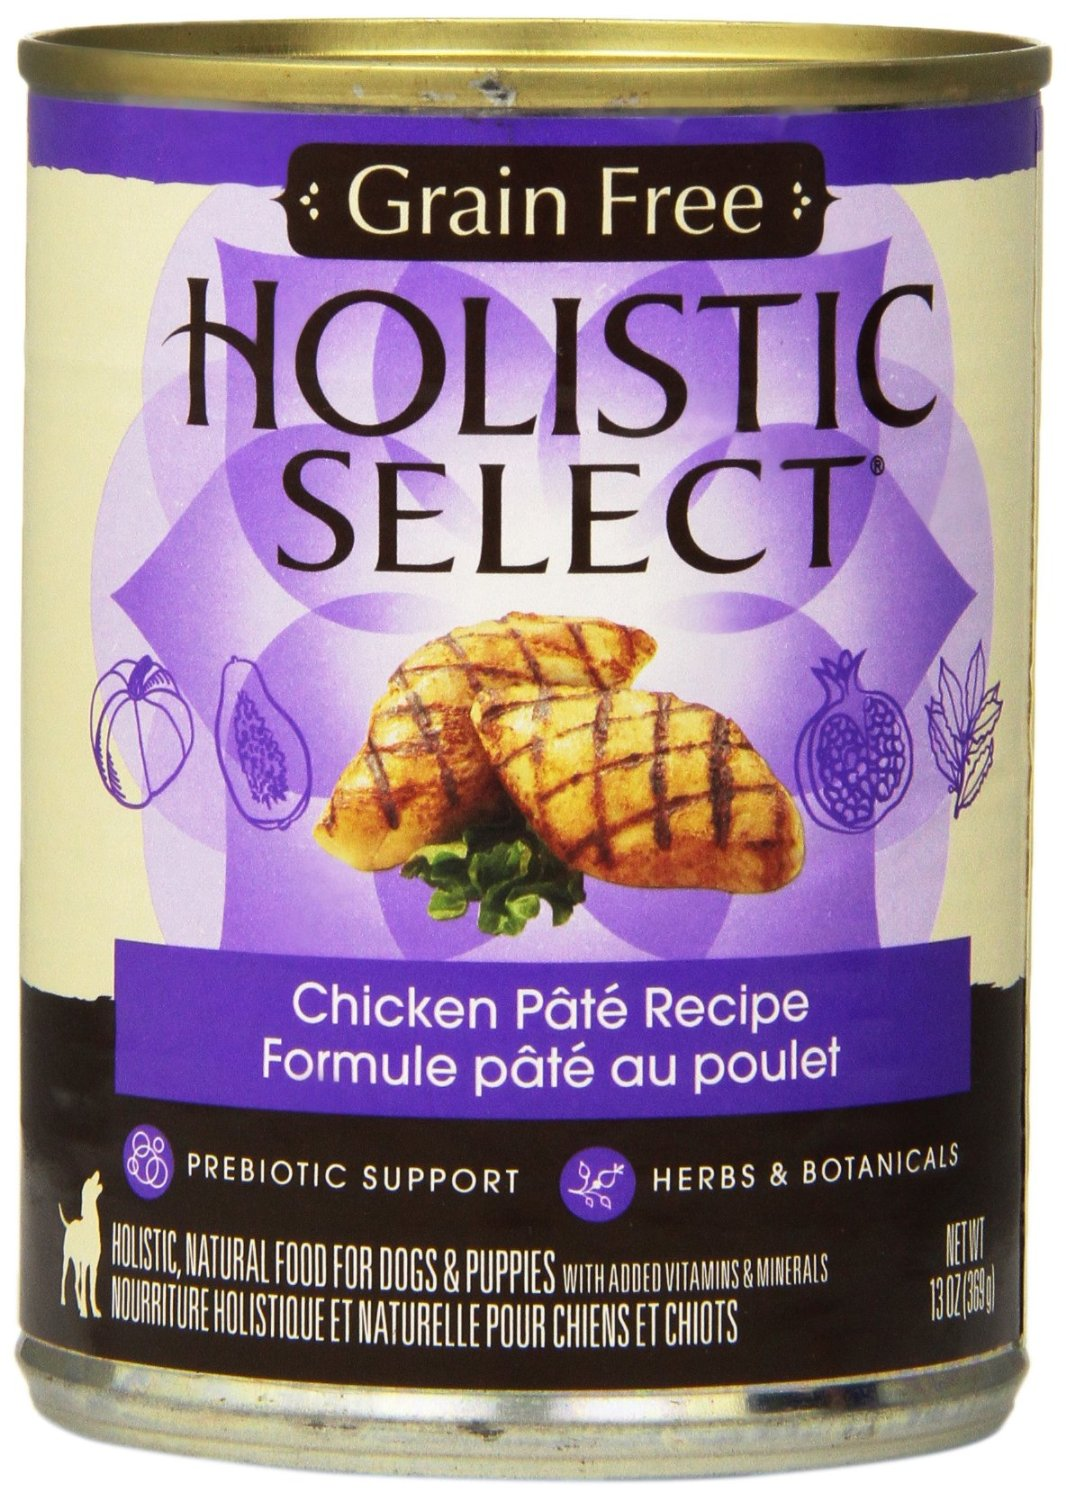 Holistic Select Canned Dog Food